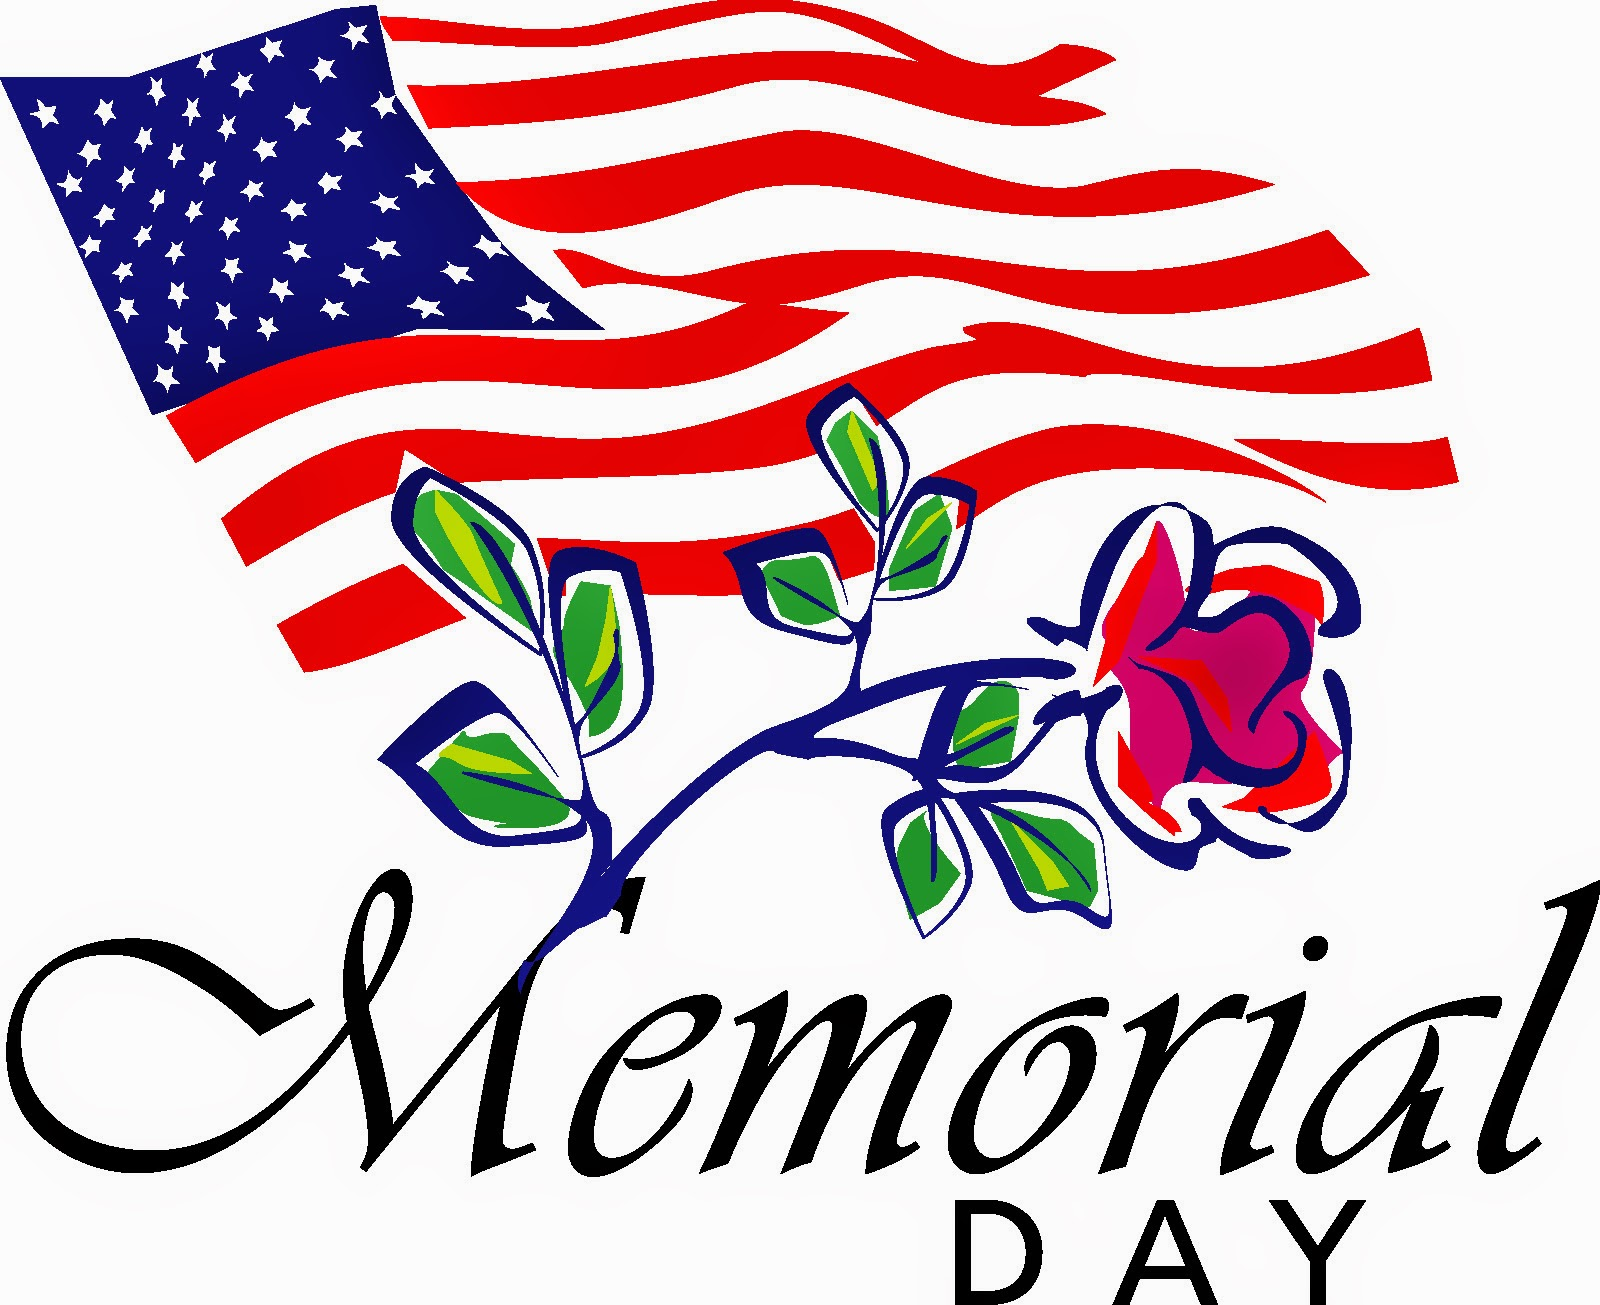 2018 clipart memorial day